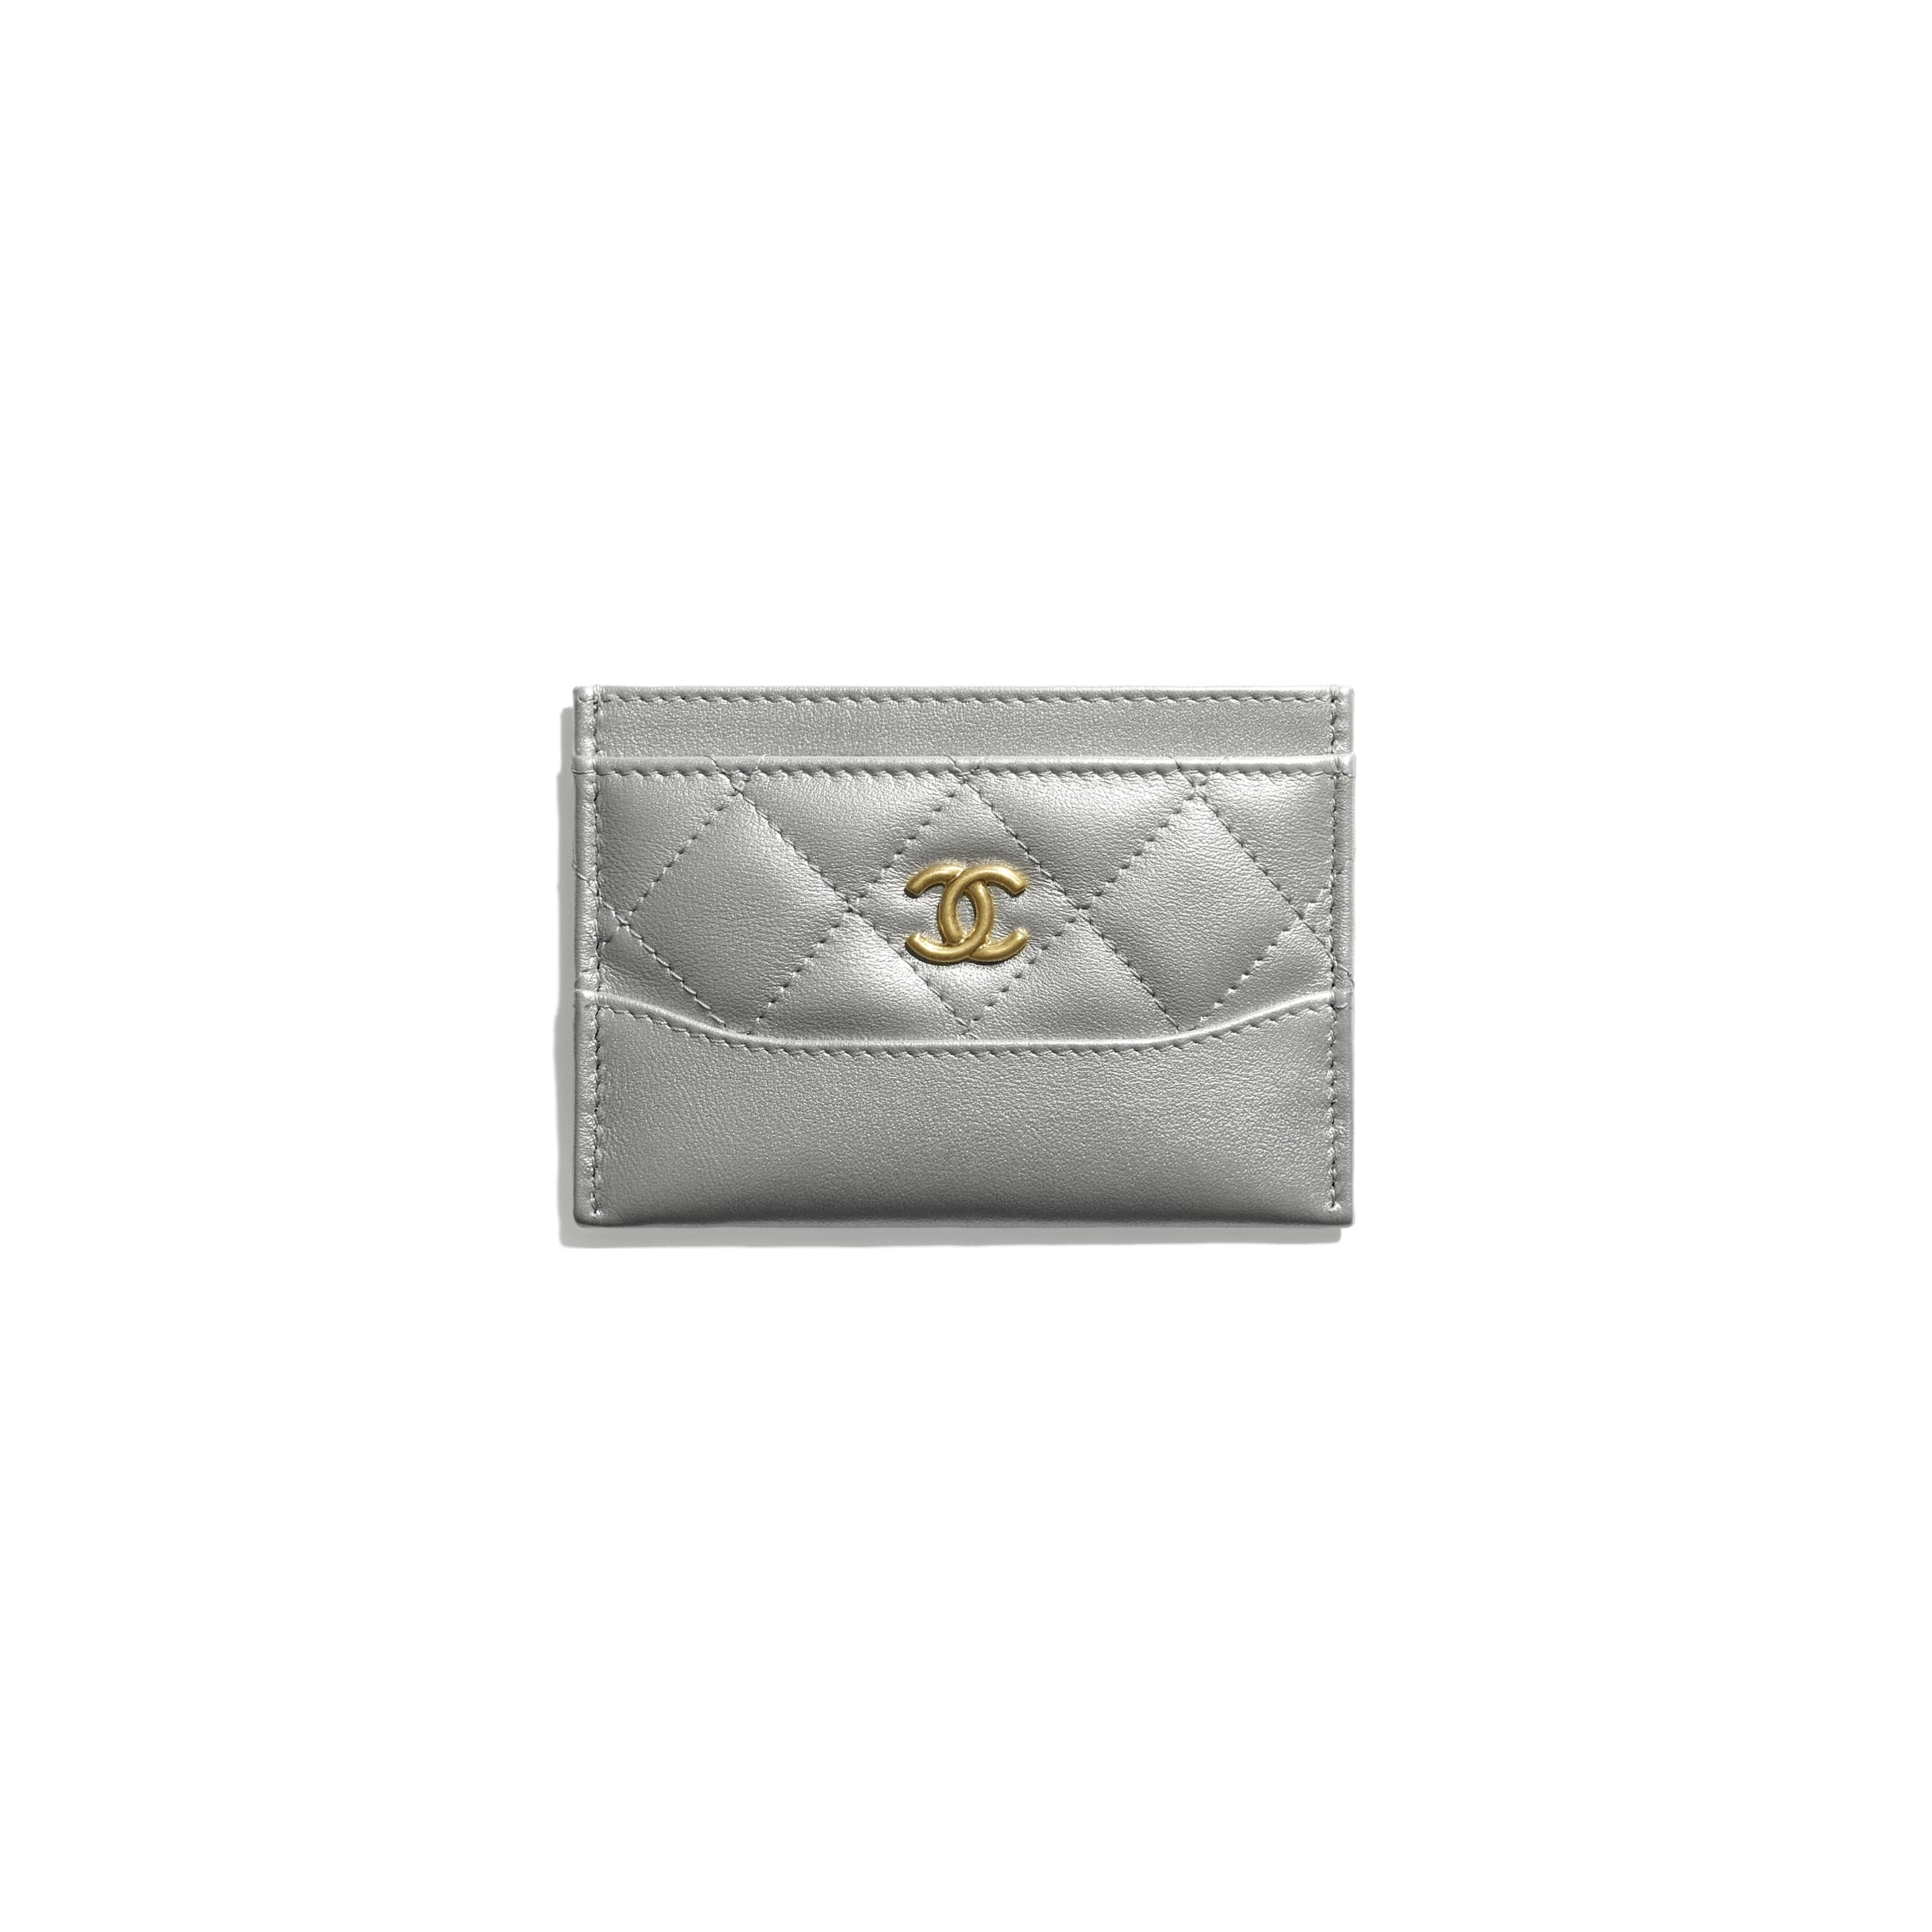 Card Holder - Silver - Metallic Aged Calfskin, Metallic Caflskin & Gold-Tone Metal - CHANEL - Default view - see standard sized version